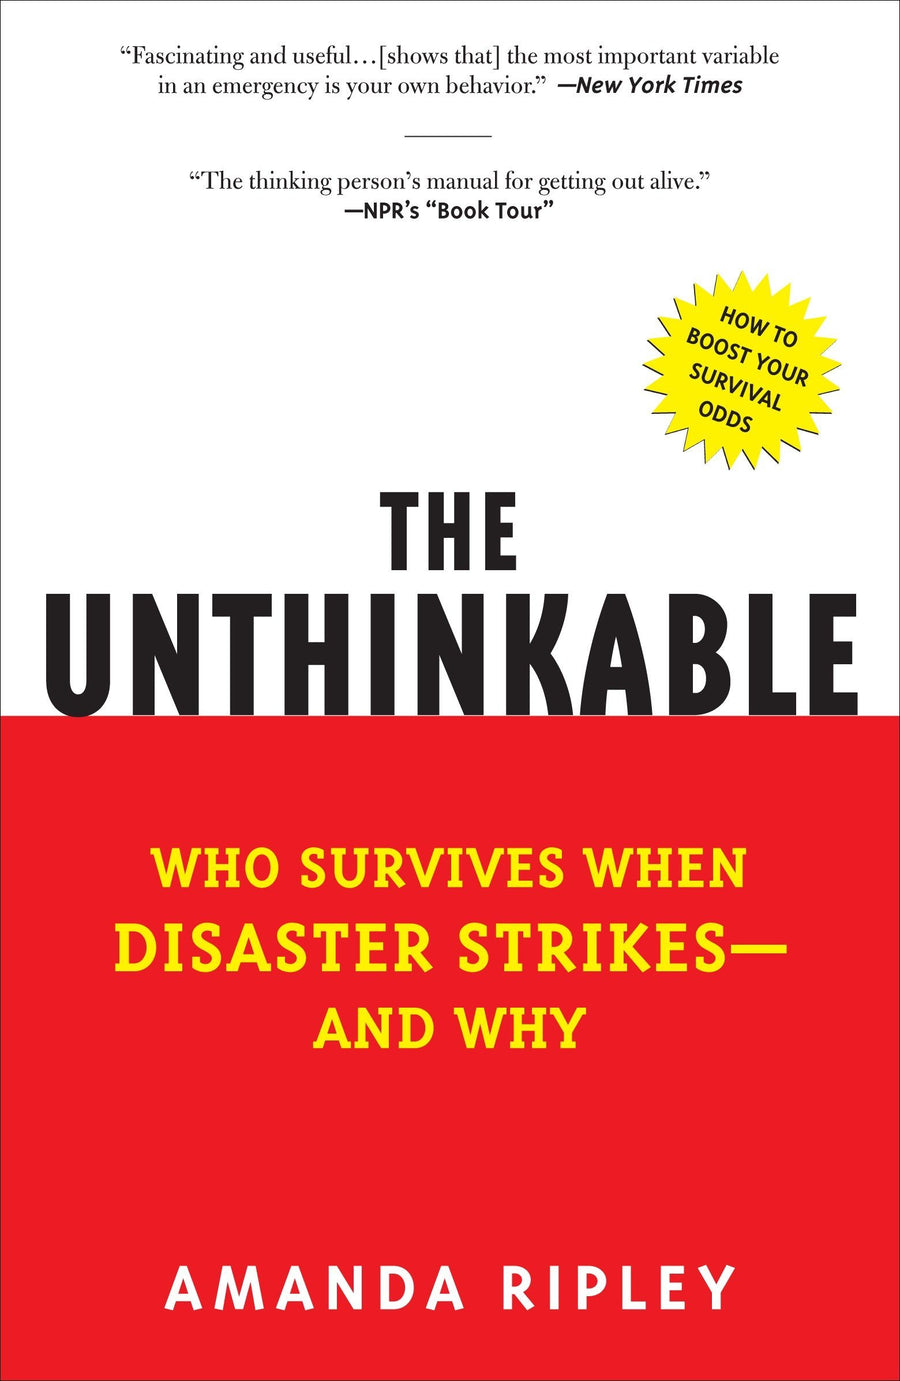 The Unthinkable: Who Survives When Disaster Strikes - Leadership Books